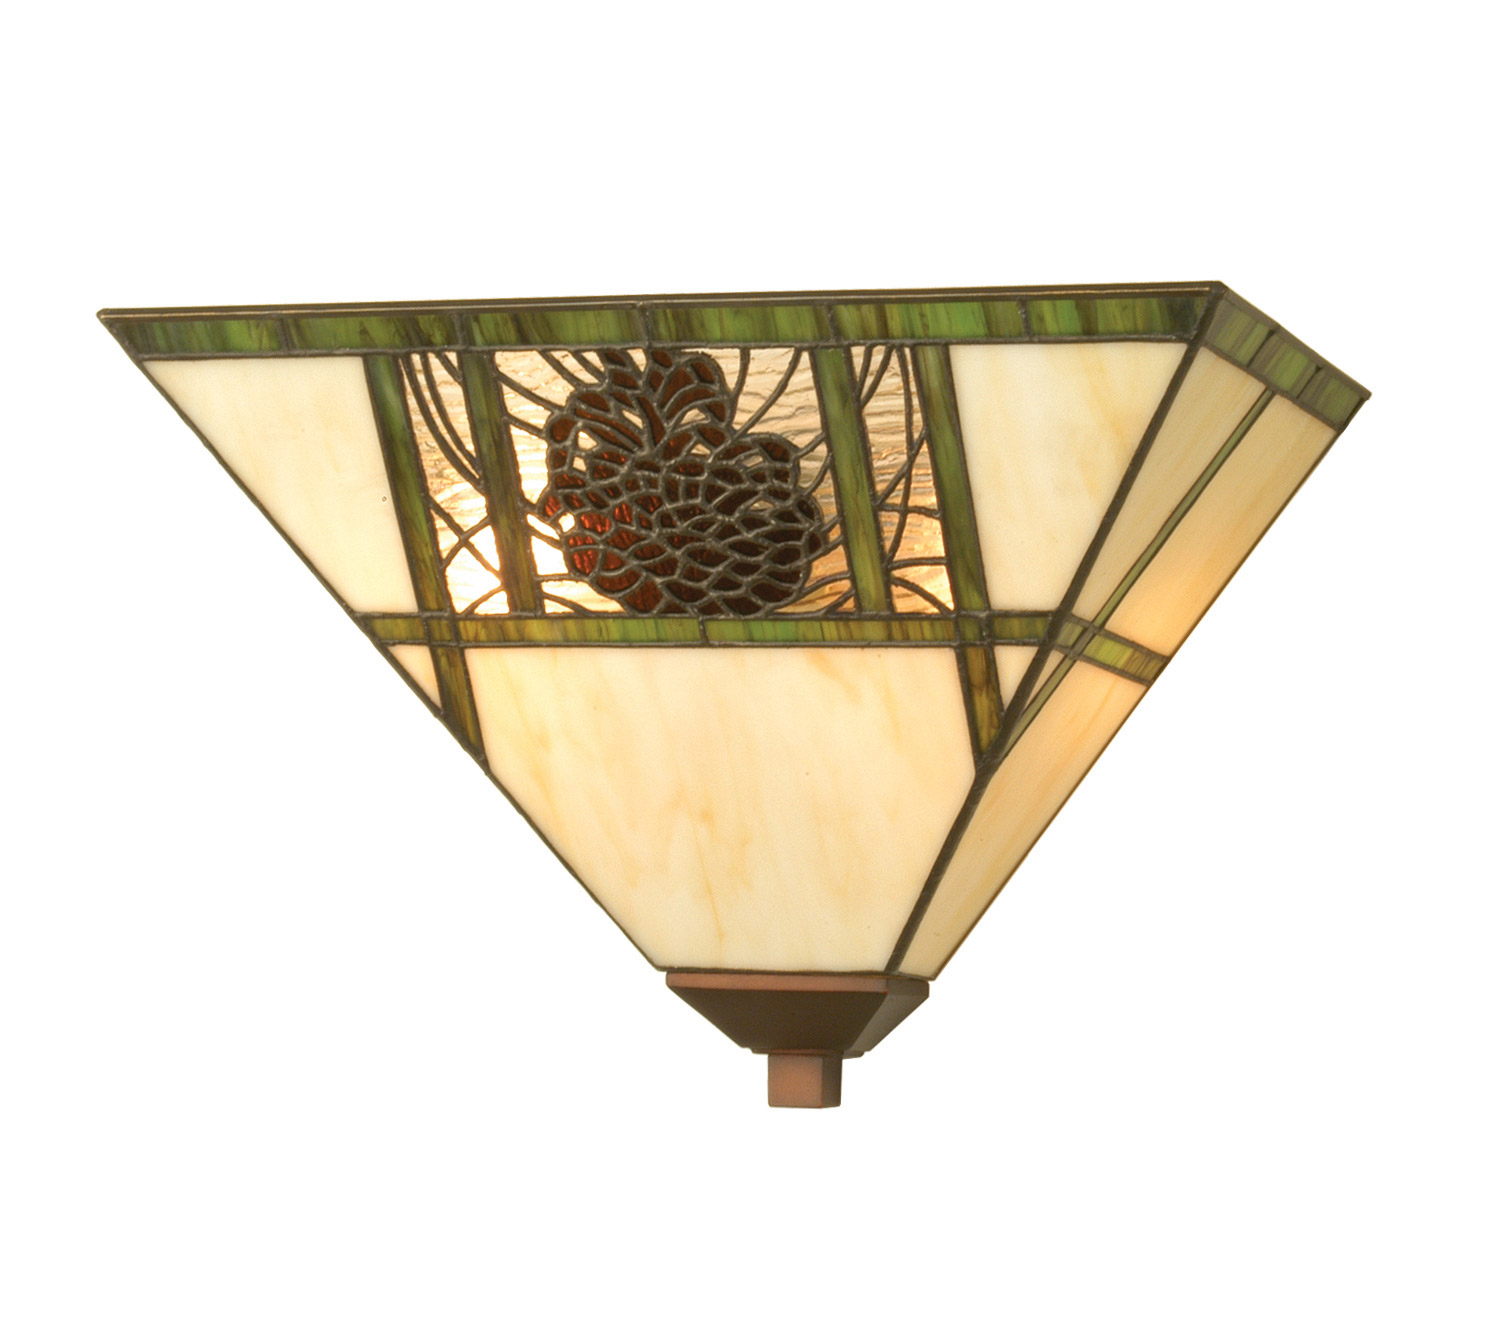 pine cone lamp shades with Pinecone Ridge Wall Sconce 20635 on Arts And Crafts Pine Cone Slag Glass L  134 C Ce84eaea6f as well 45457 moreover Pinecone Ridge Wall Sconce 20635 as well 38396 also Kid Art Lantern Craft Make Your Own L shades Sml.